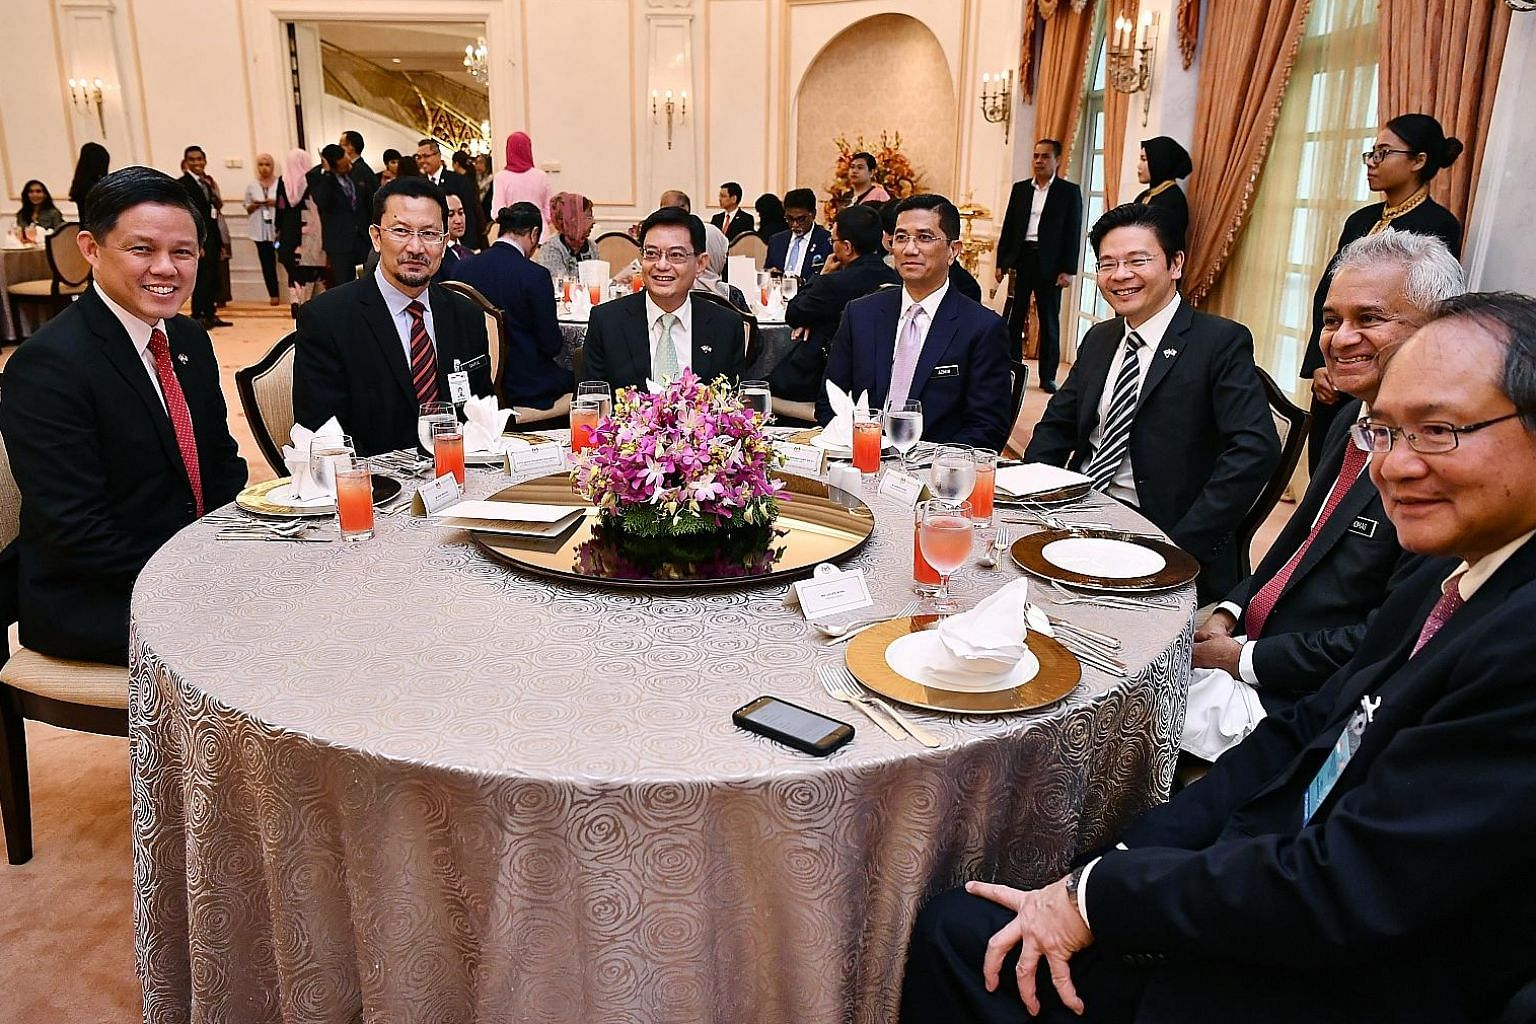 Above, from left: Singapore's Trade and Industry Minister Chan Chun Sing, Malaysia's Economic Affairs Secretary-General Saiful Anuar Lebai Hussen, Singapore's Finance Minister Heng Swee Keat, Malaysia's Economic Affairs Minister Azmin Ali, Singapore'